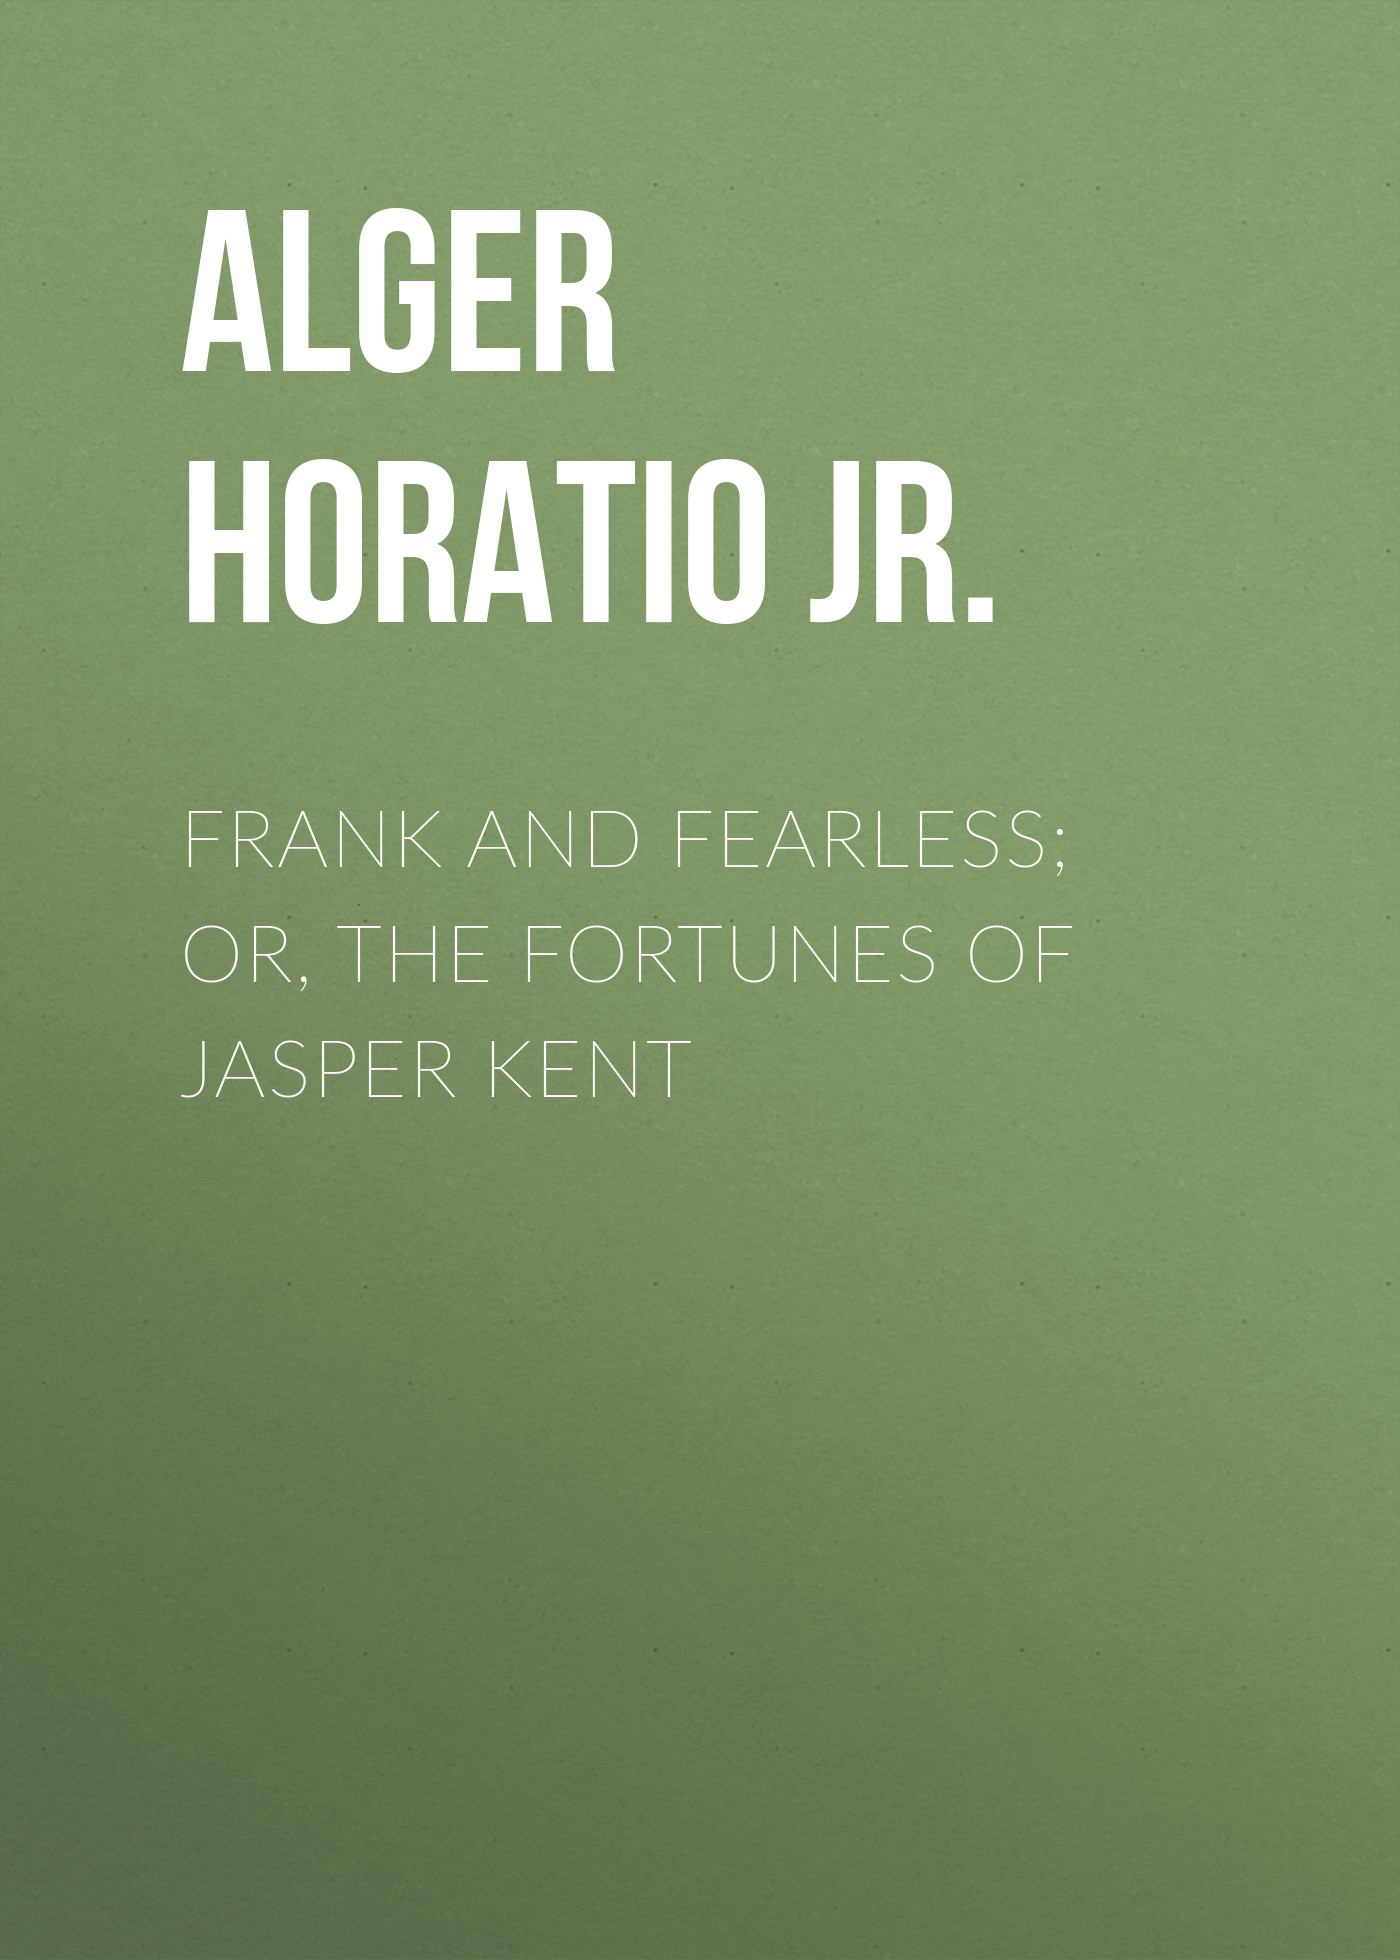 лучшая цена Alger Horatio Jr. Frank and Fearless; or, The Fortunes of Jasper Kent